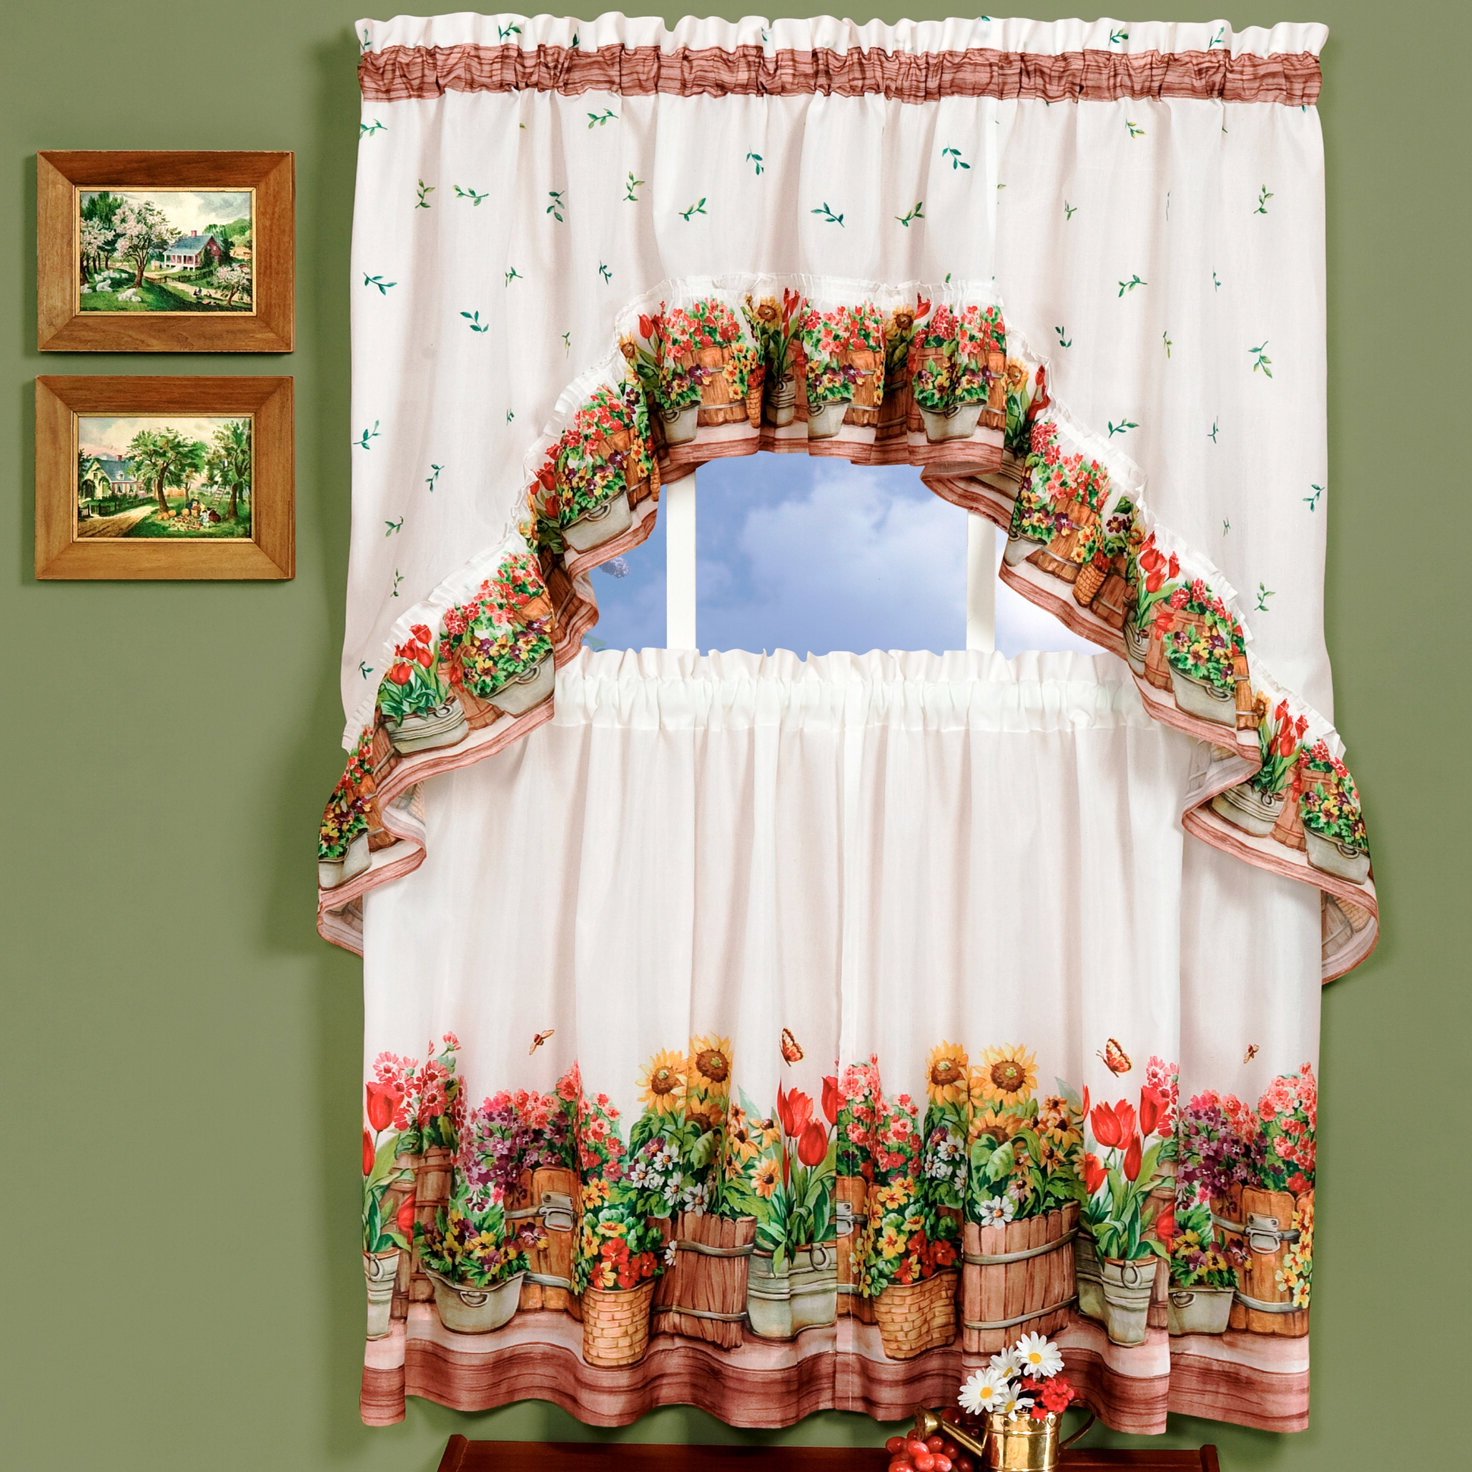 Fashionable Chateau Wines Cottage Kitchen Curtain Tier And Valance Sets Pertaining To Country Garden Valance And Tier Set (View 4 of 20)